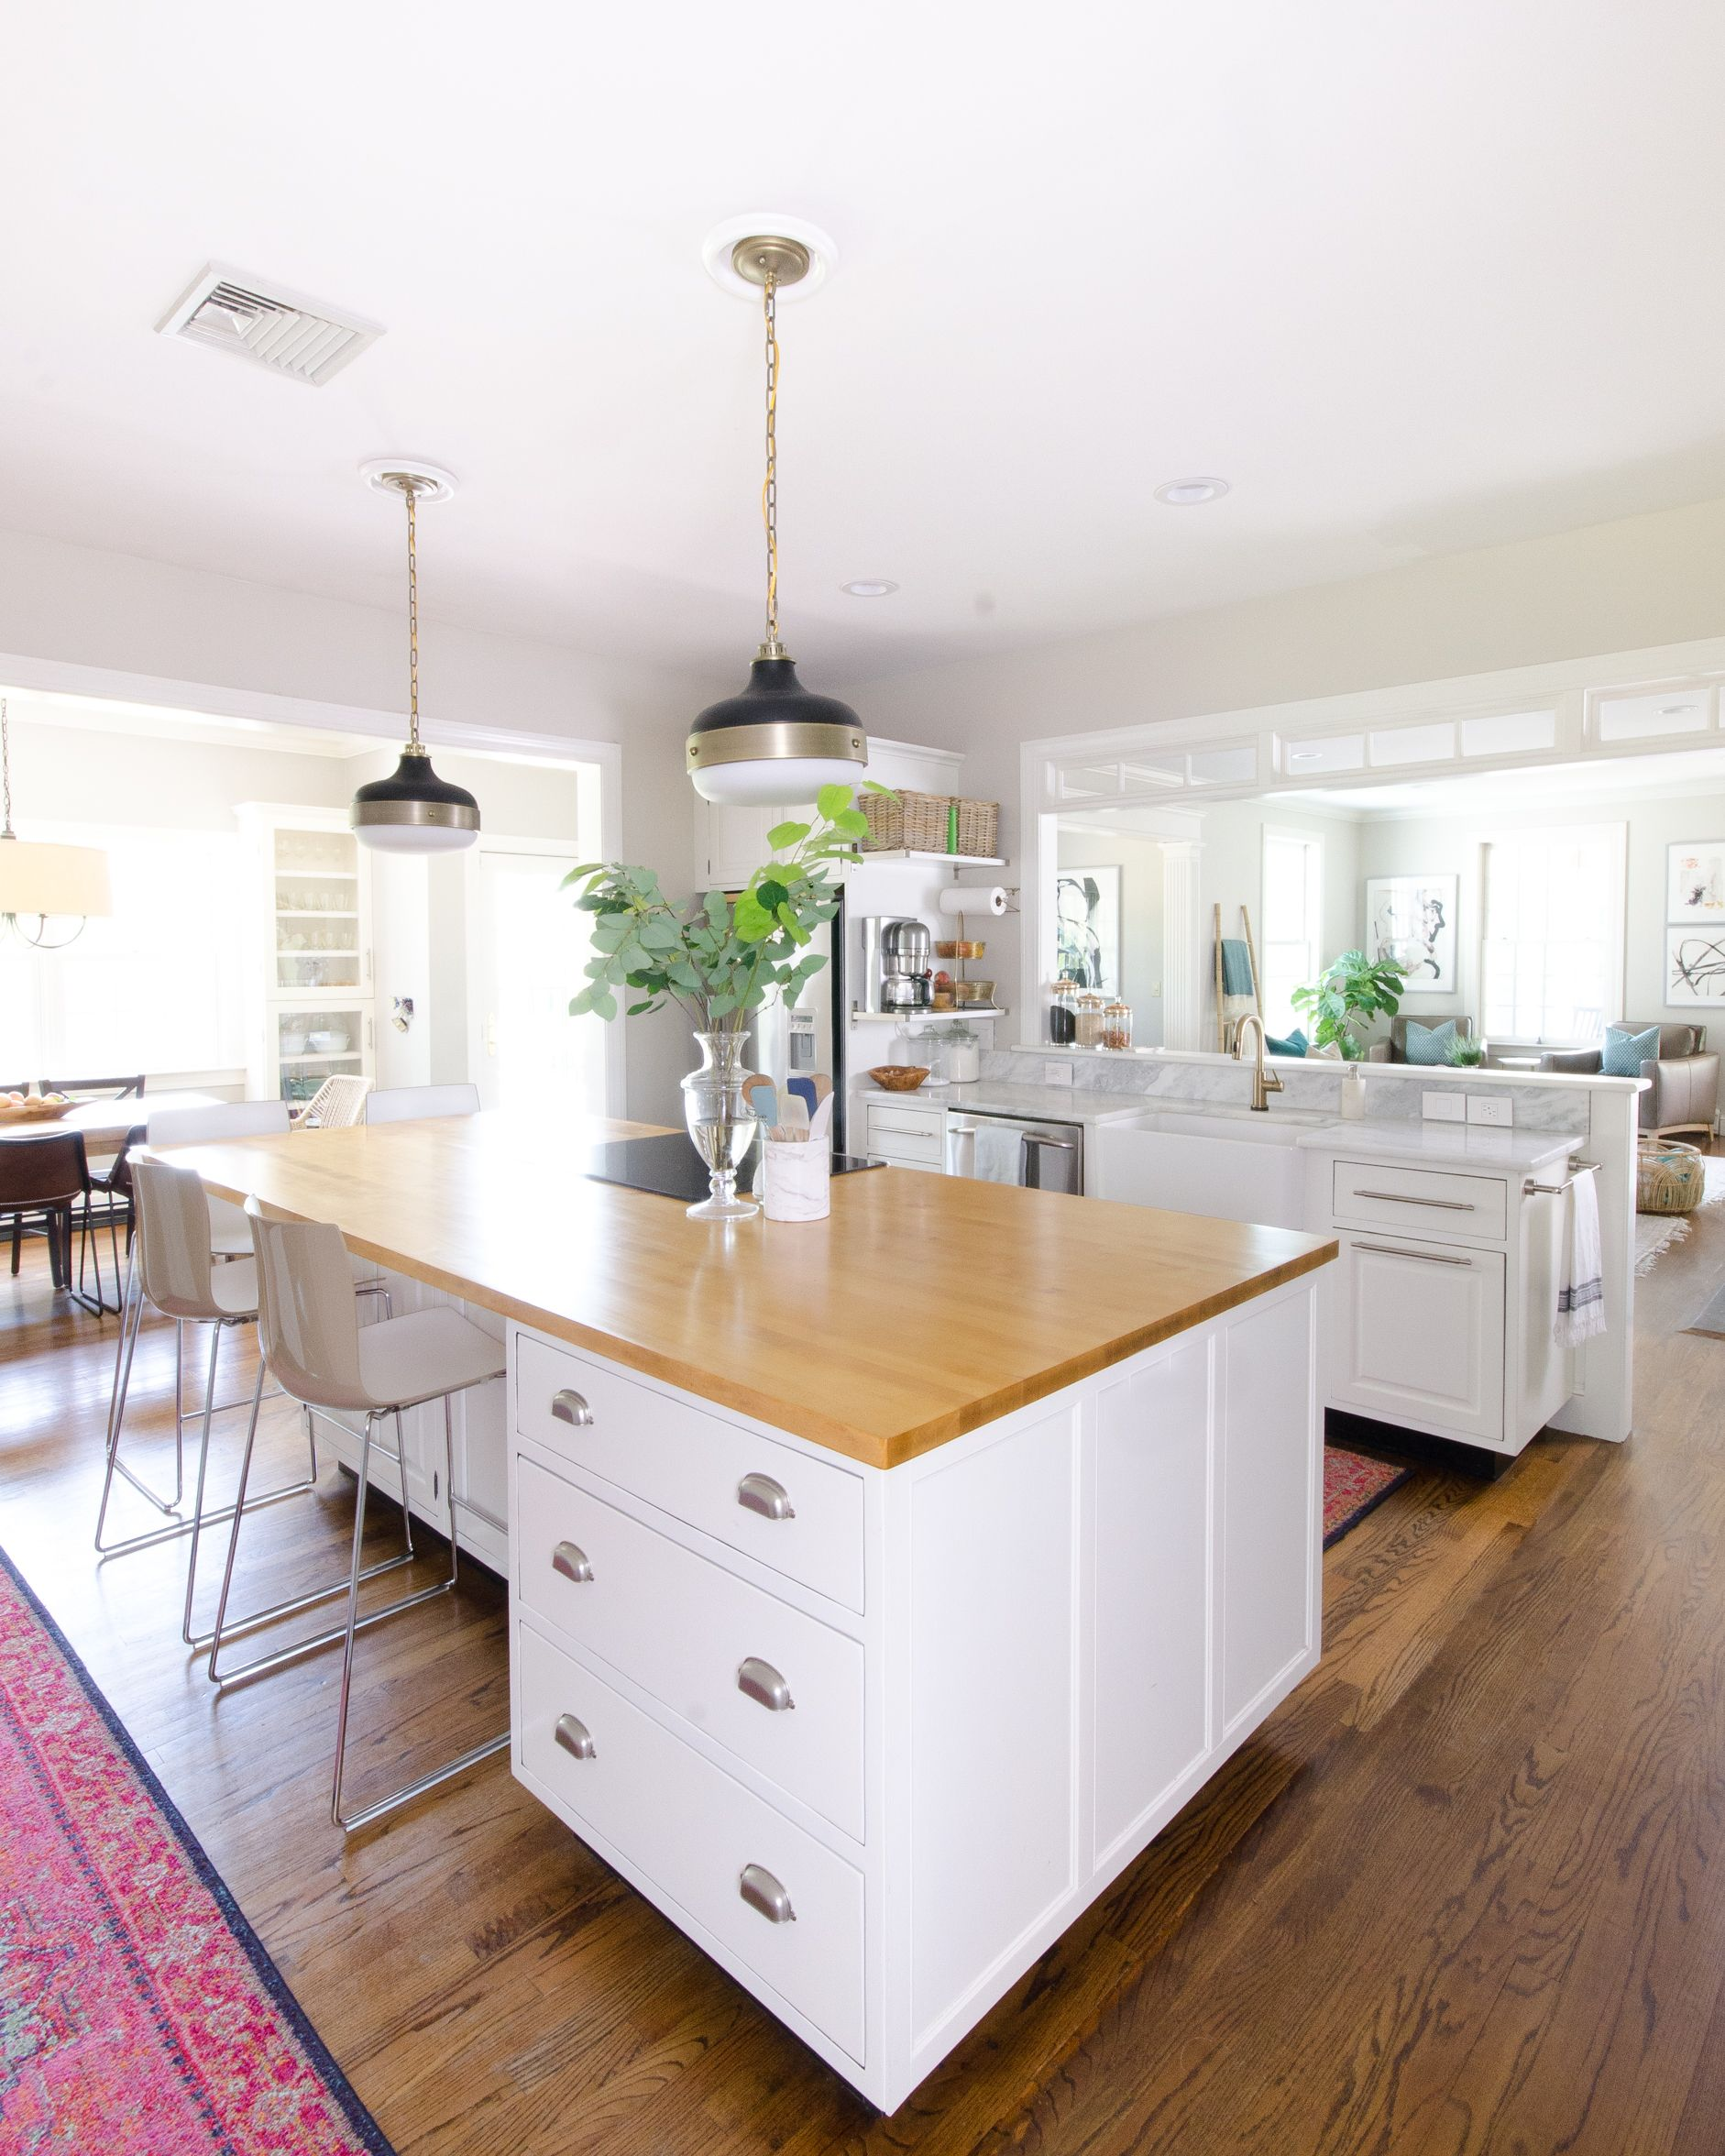 How to Seal Butcher Block Counters Kitchen furniture